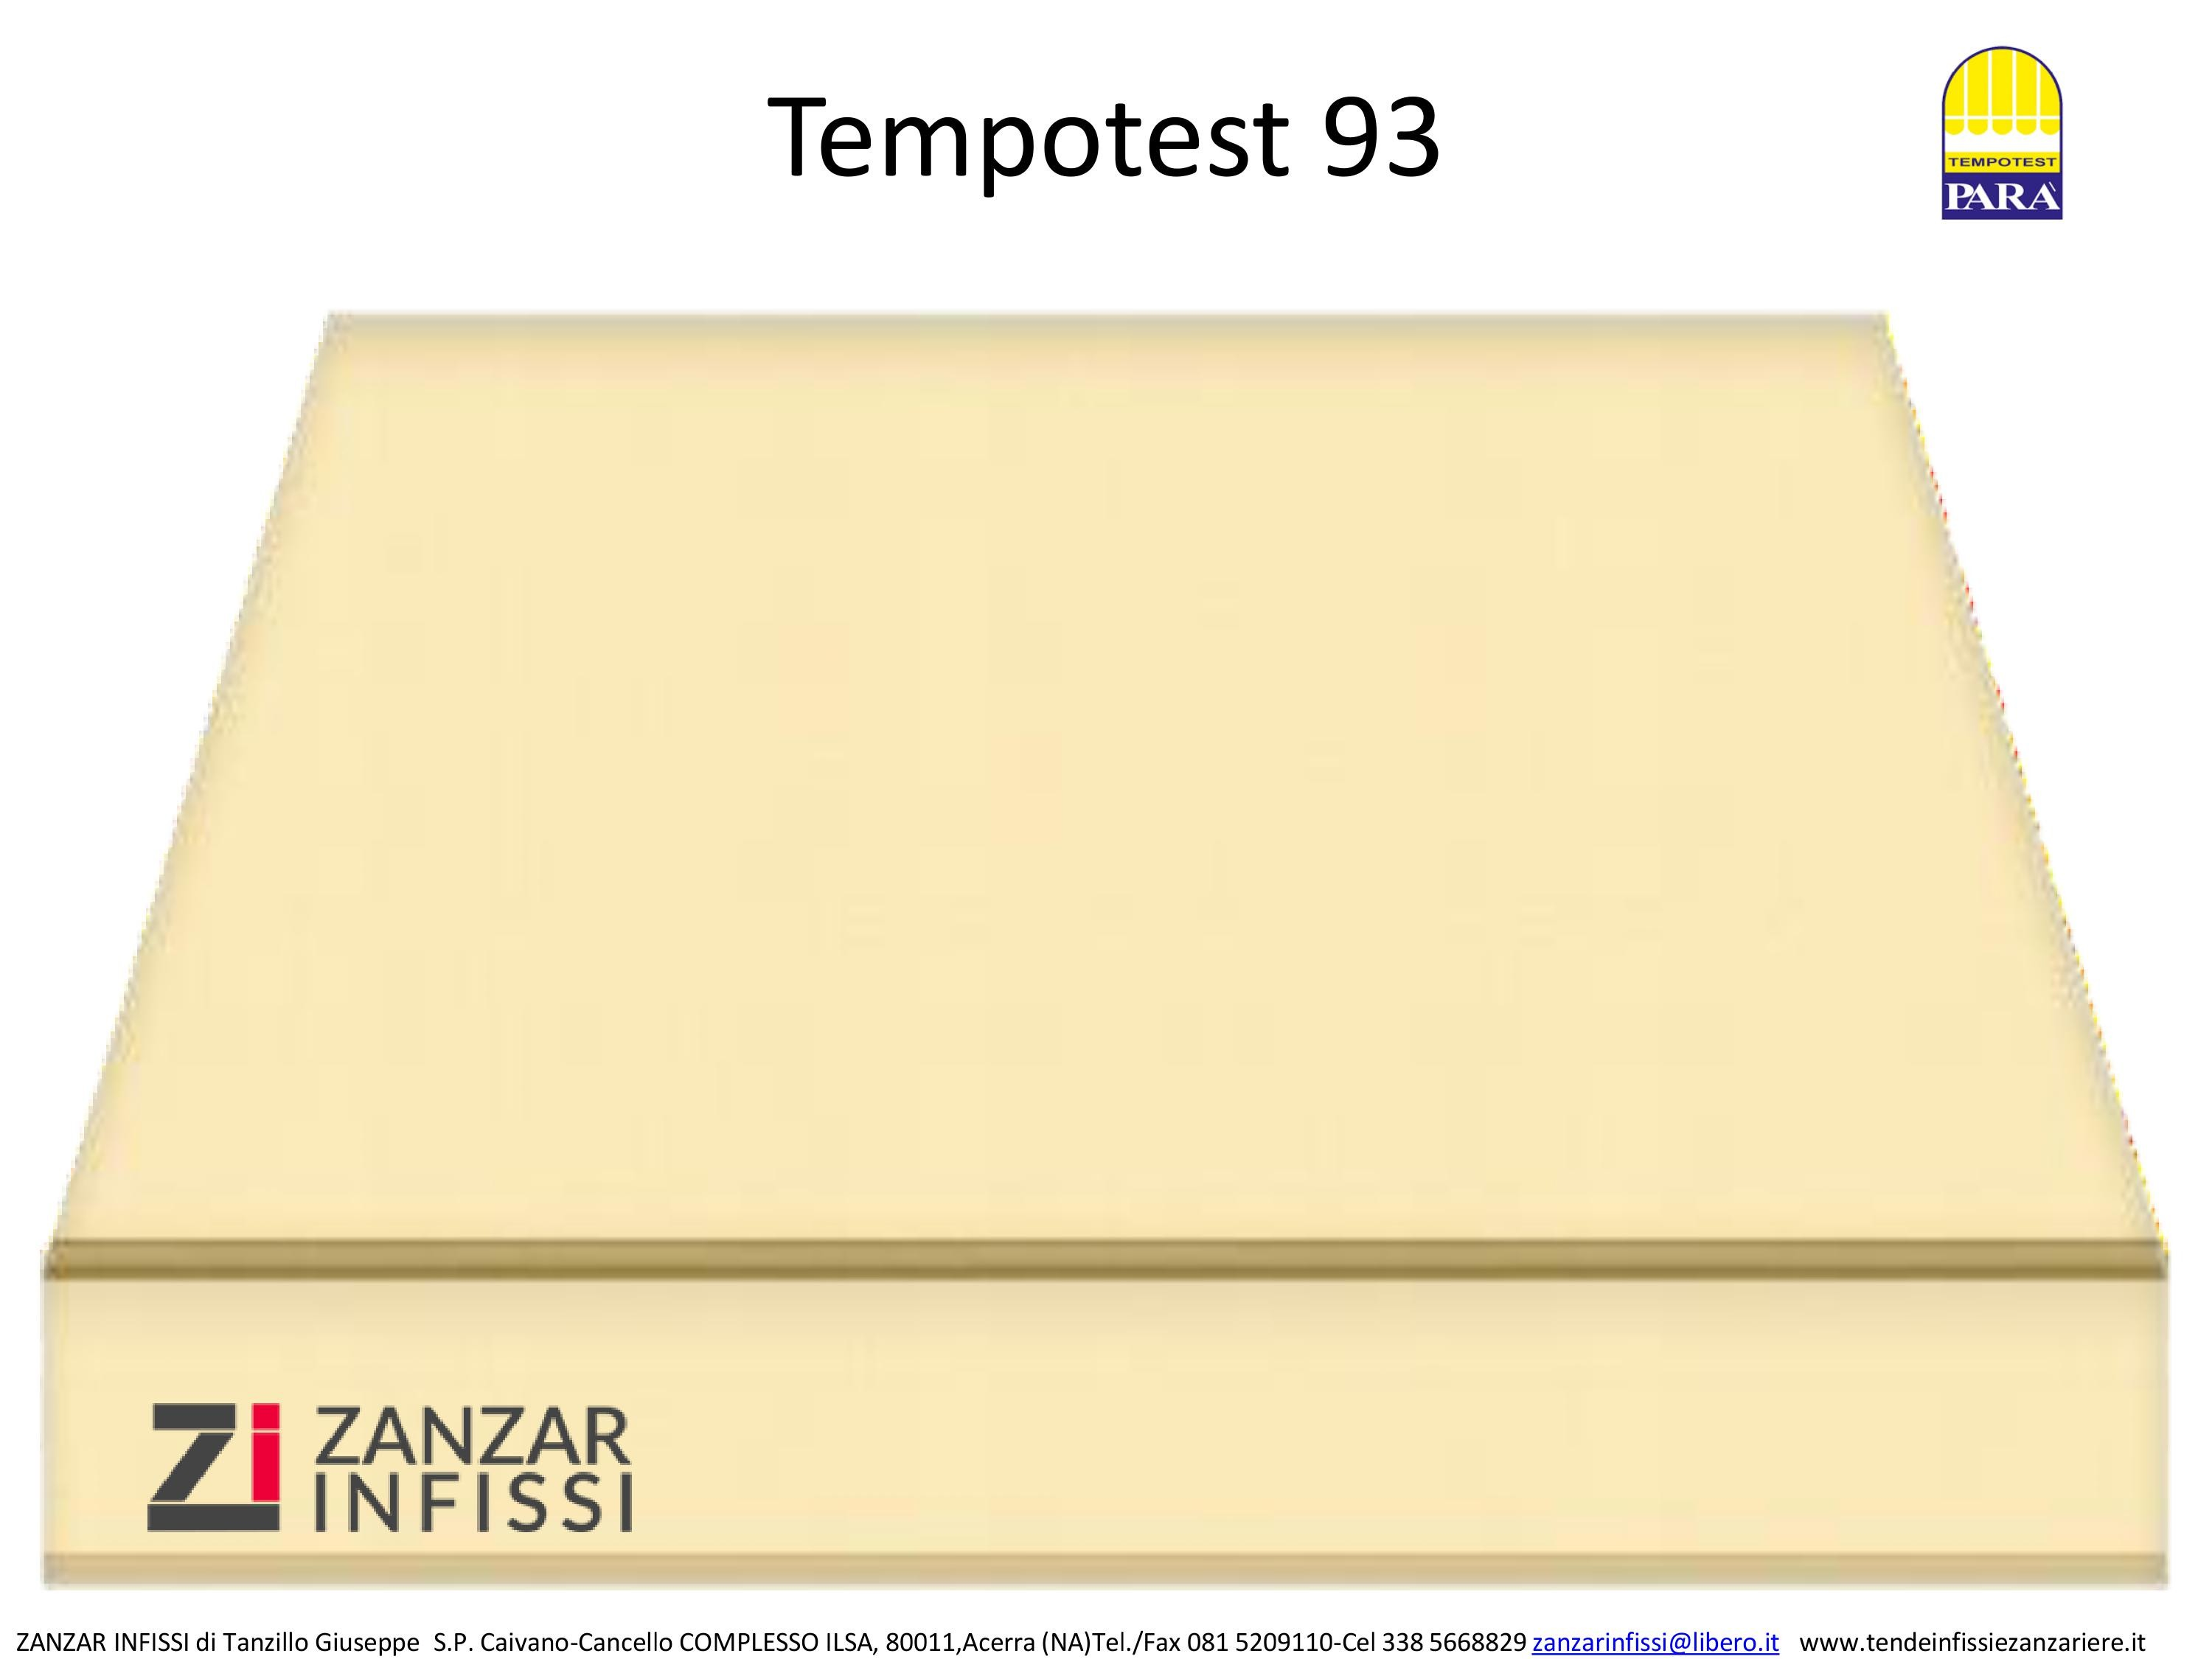 Tempotest 93